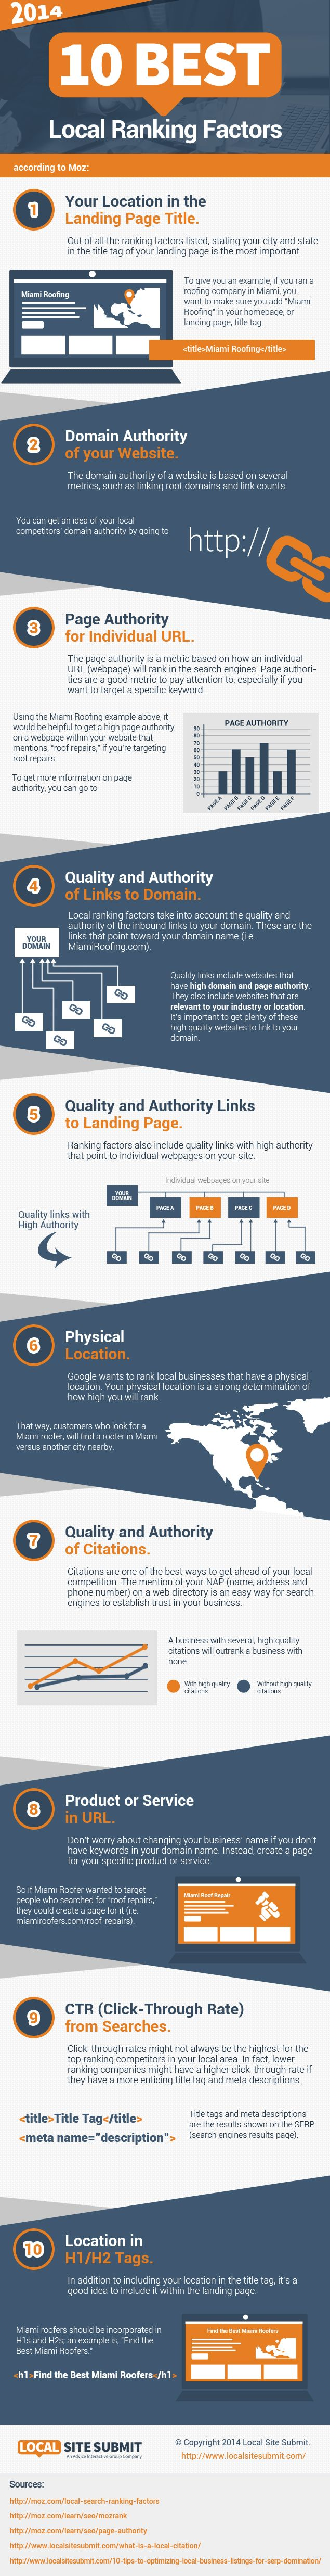 Local Search Ranking Factors 2014 According to Moz - Moz recently came out with their survey of the top local search ranking factors of 2014. If you're new to local search, I recommend you read the full survey. It's got a ton of great information including local SEO factors affected by Pigeon, negative ranking factors, as well as comments from some of the most influential SEOs. - See more at: http://www.localsitesubmit.com/local-ranking-factors-2014/#sthash.OFzkPlHp.dpuf